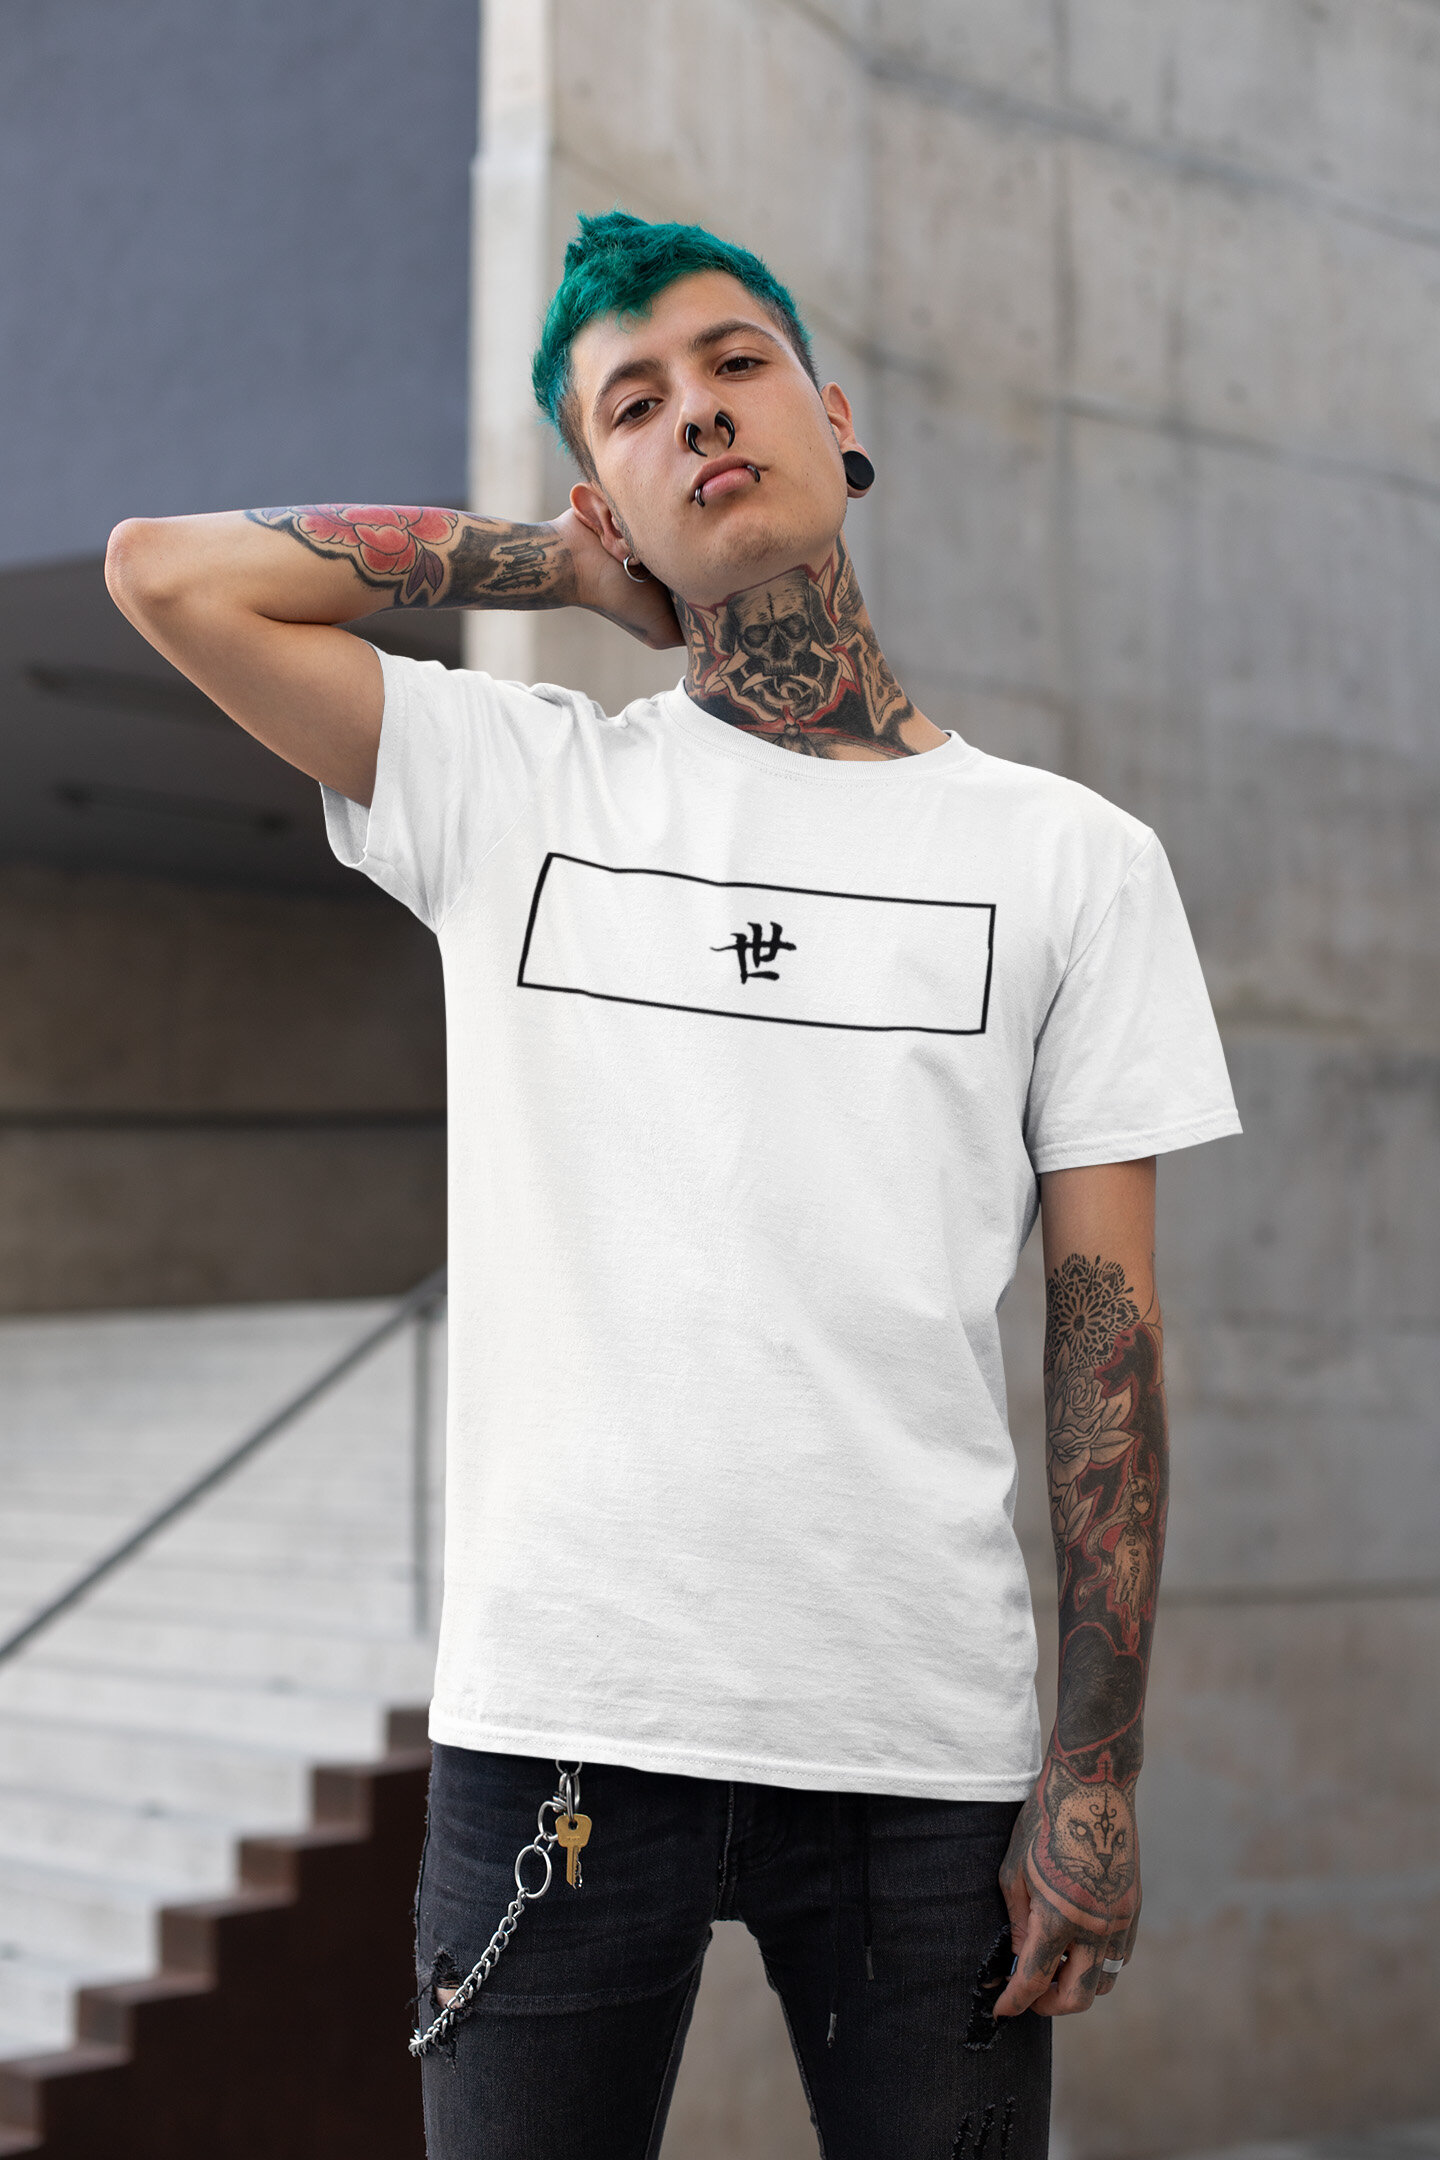 t-shirt-mockup-of-a-punk-man-with-blue-hair-and-tattoos-posing-by-a-stairway-26480.jpg